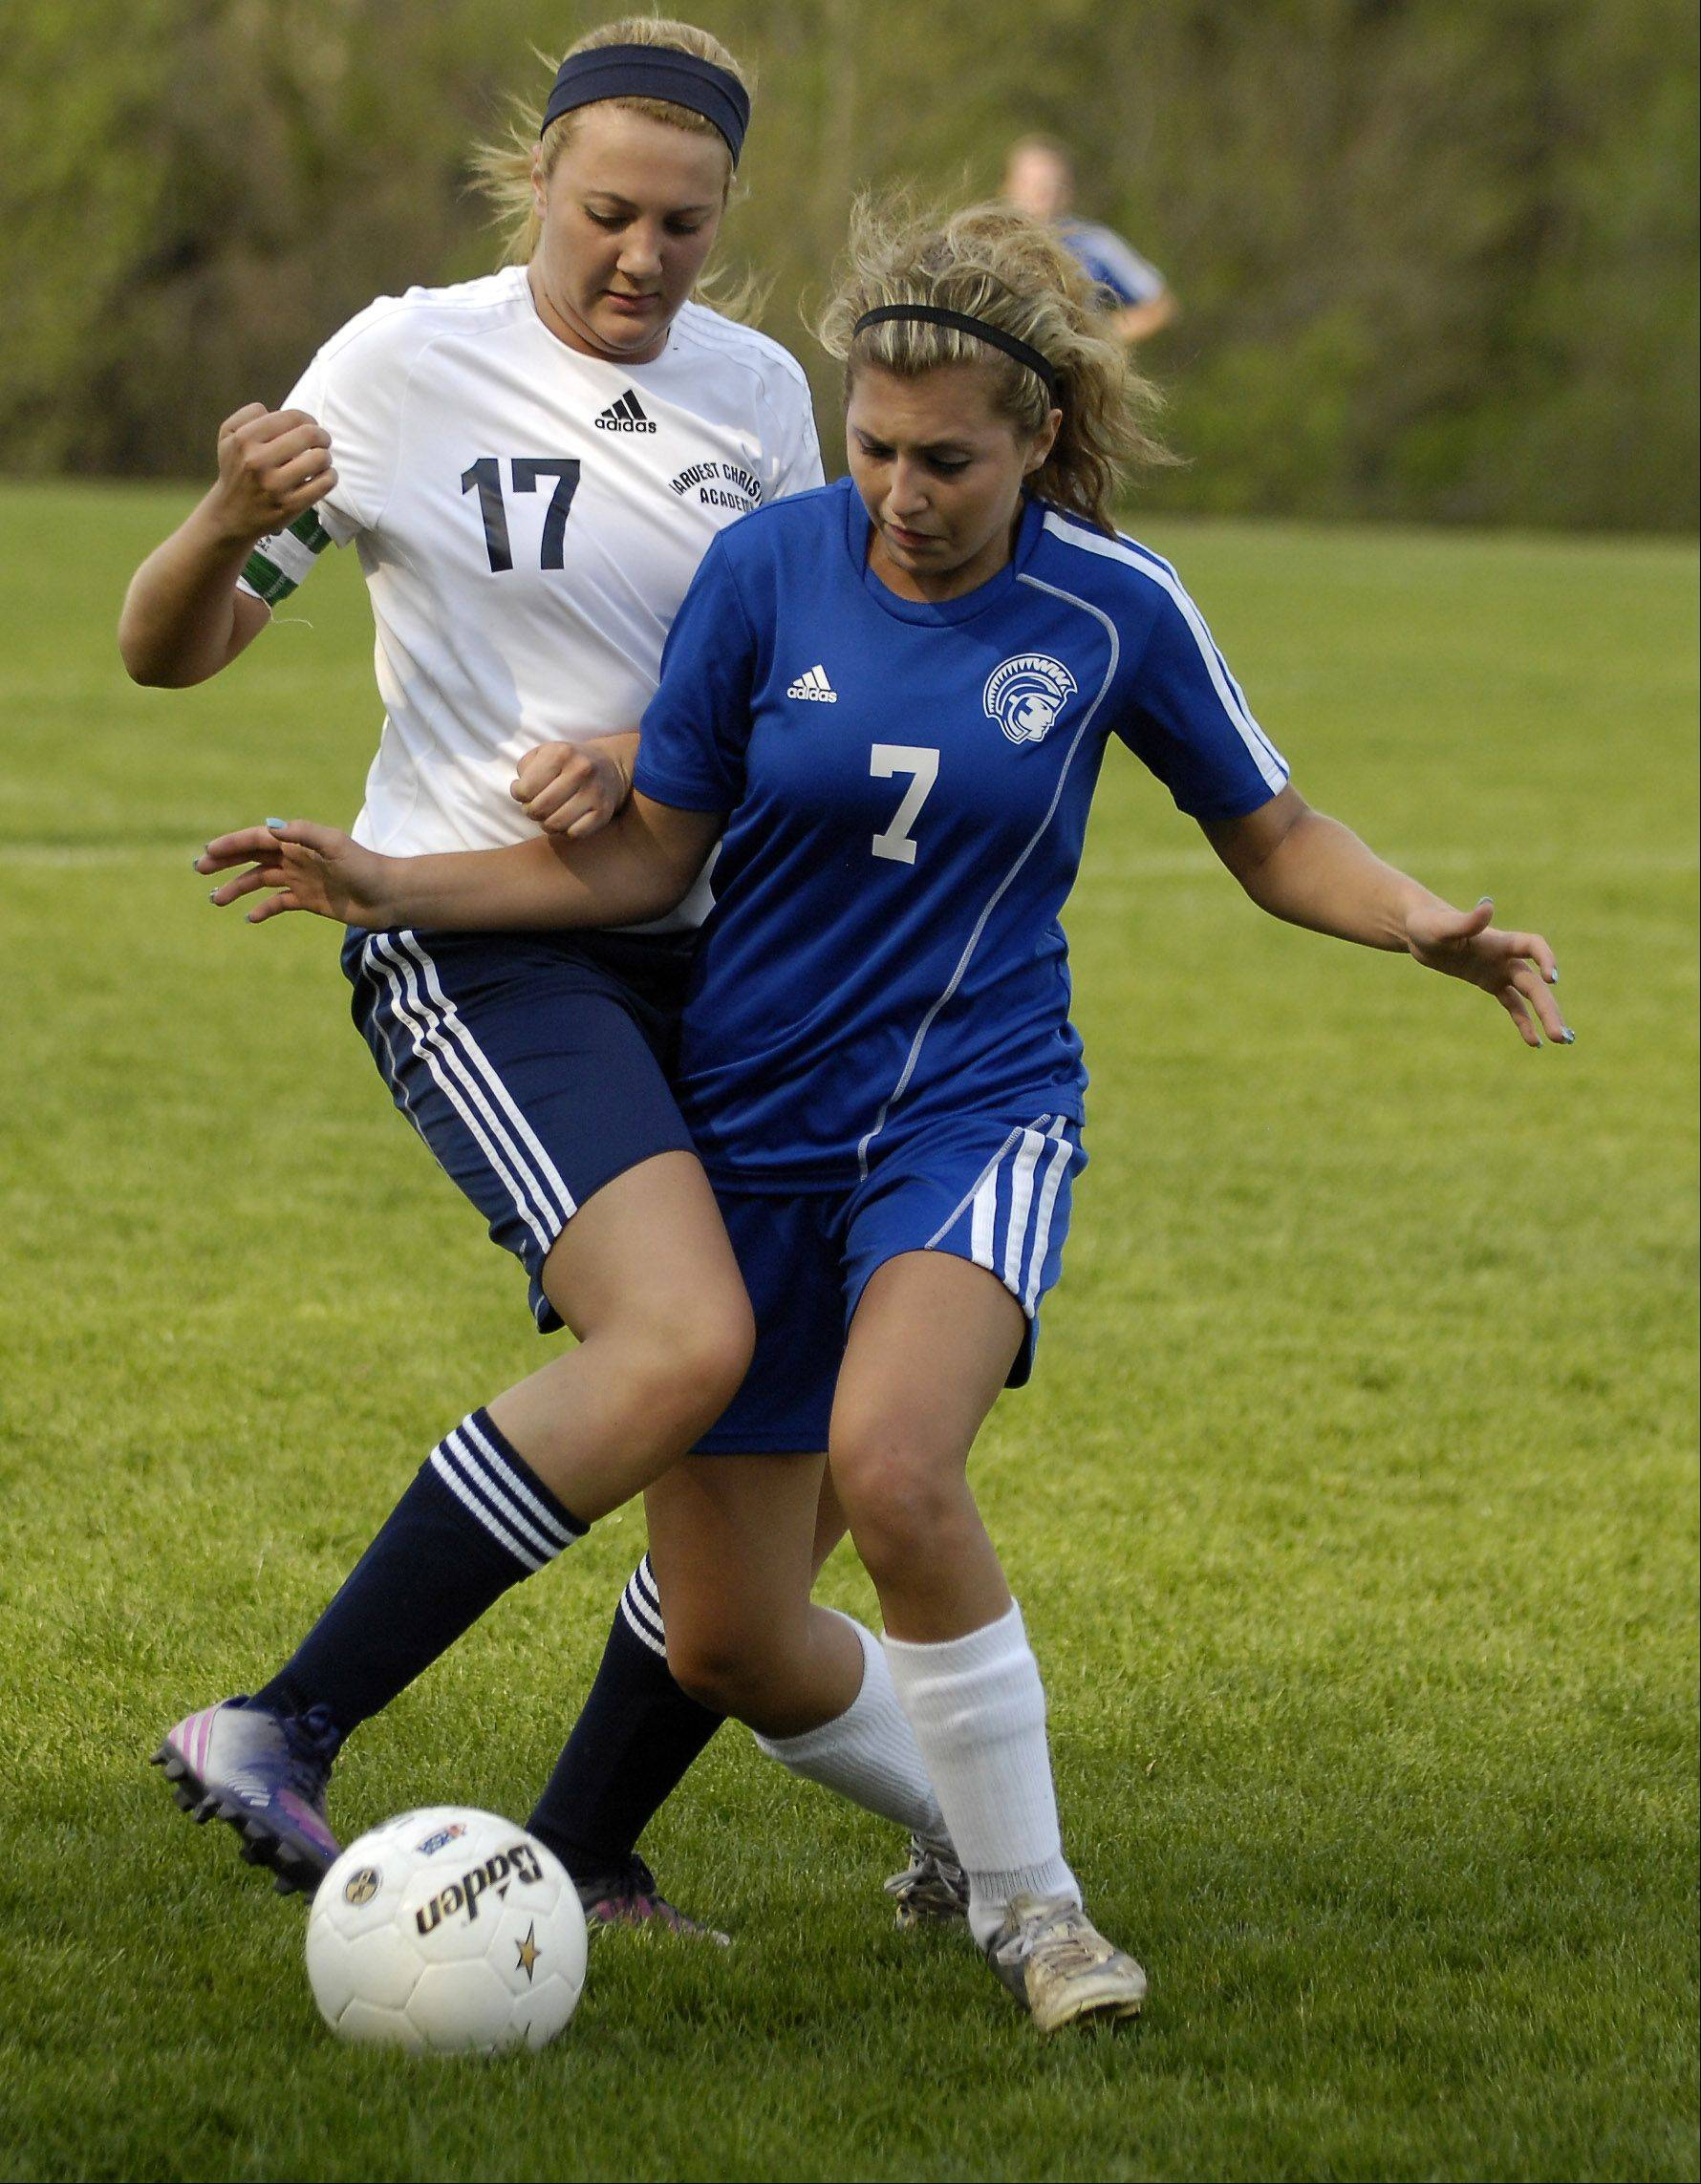 Harvest Christian's Erica Manusos, left, and Westminster Christian's Taylor Pedersen battle for the ball during Wednesday's Class 1A regional semifinal in Elgin.